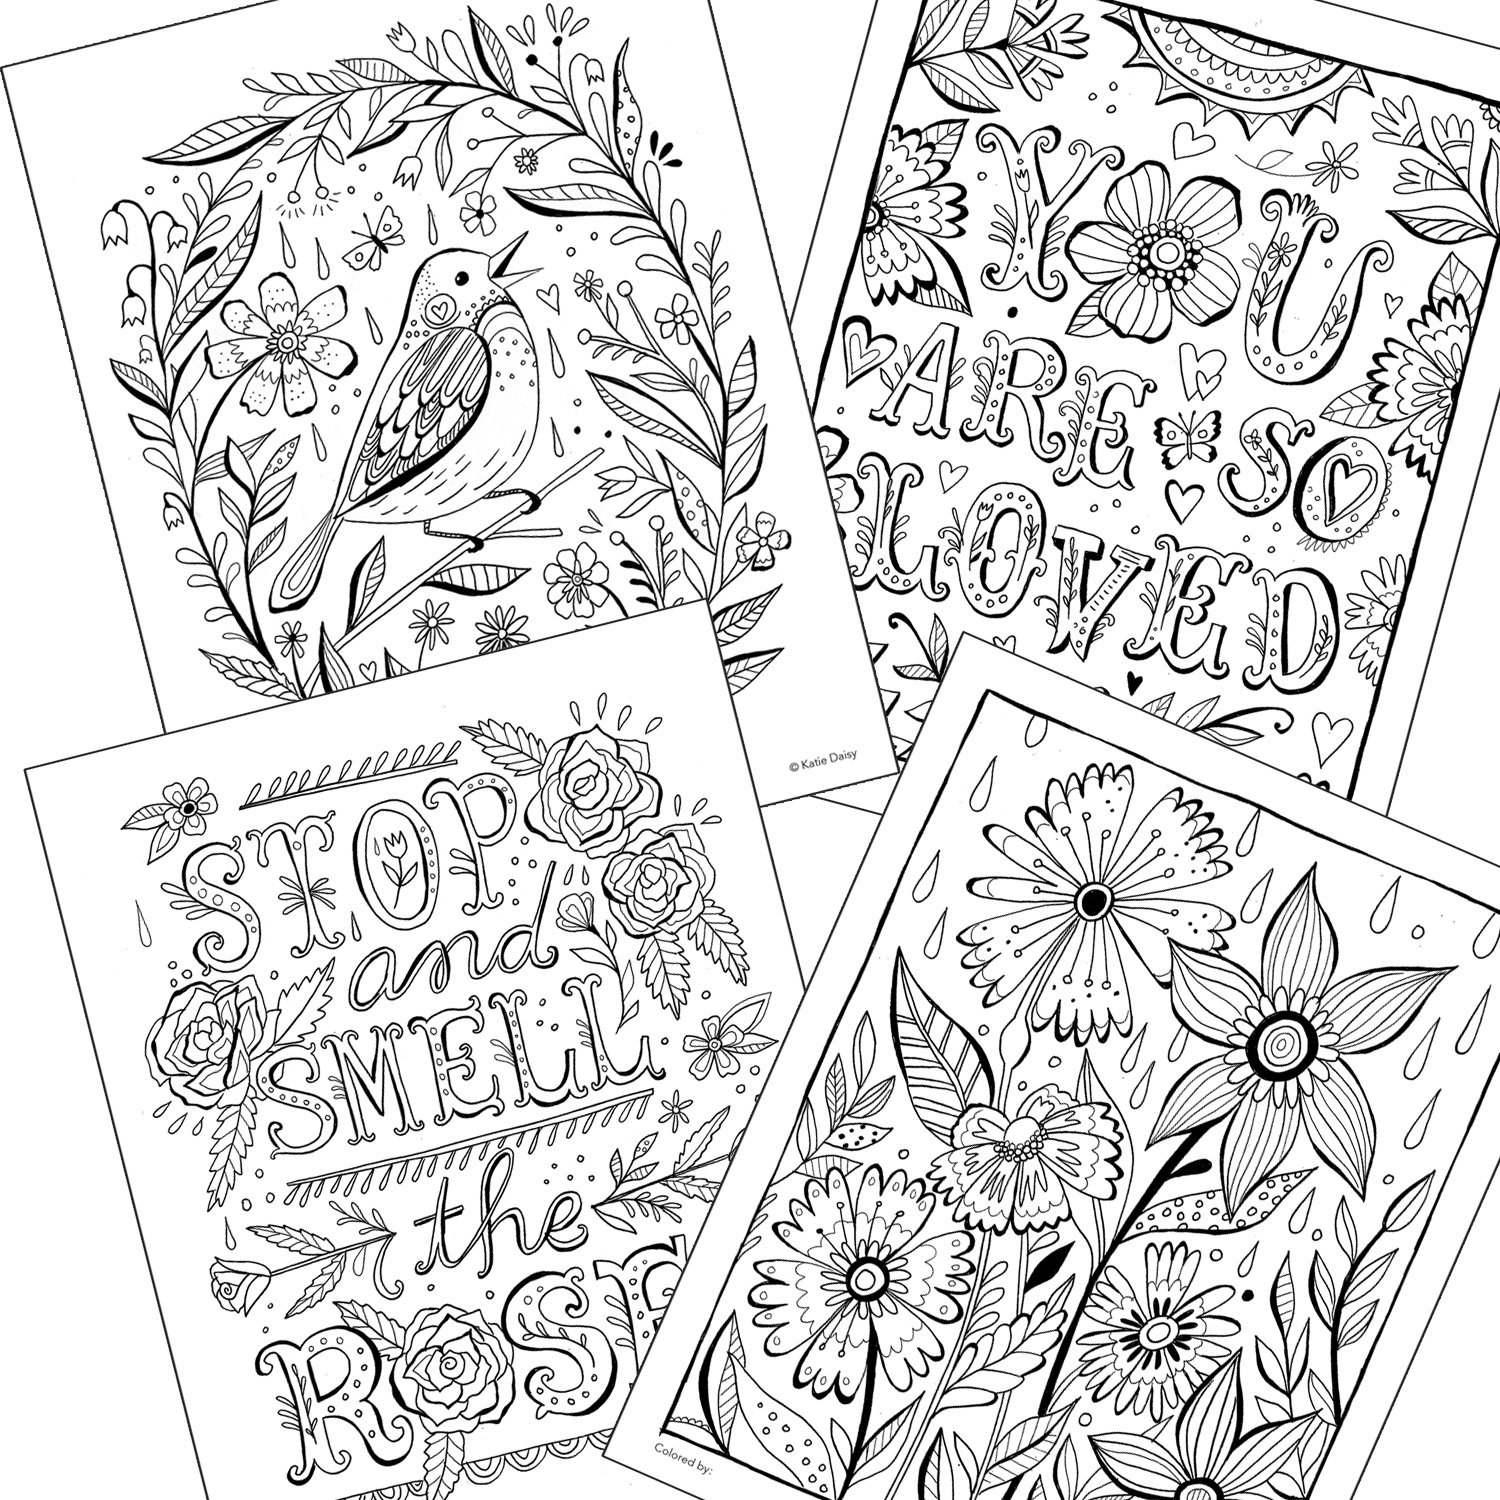 Amazon.com: Create Magic: A Coloring Book by Katie Daisy for ...